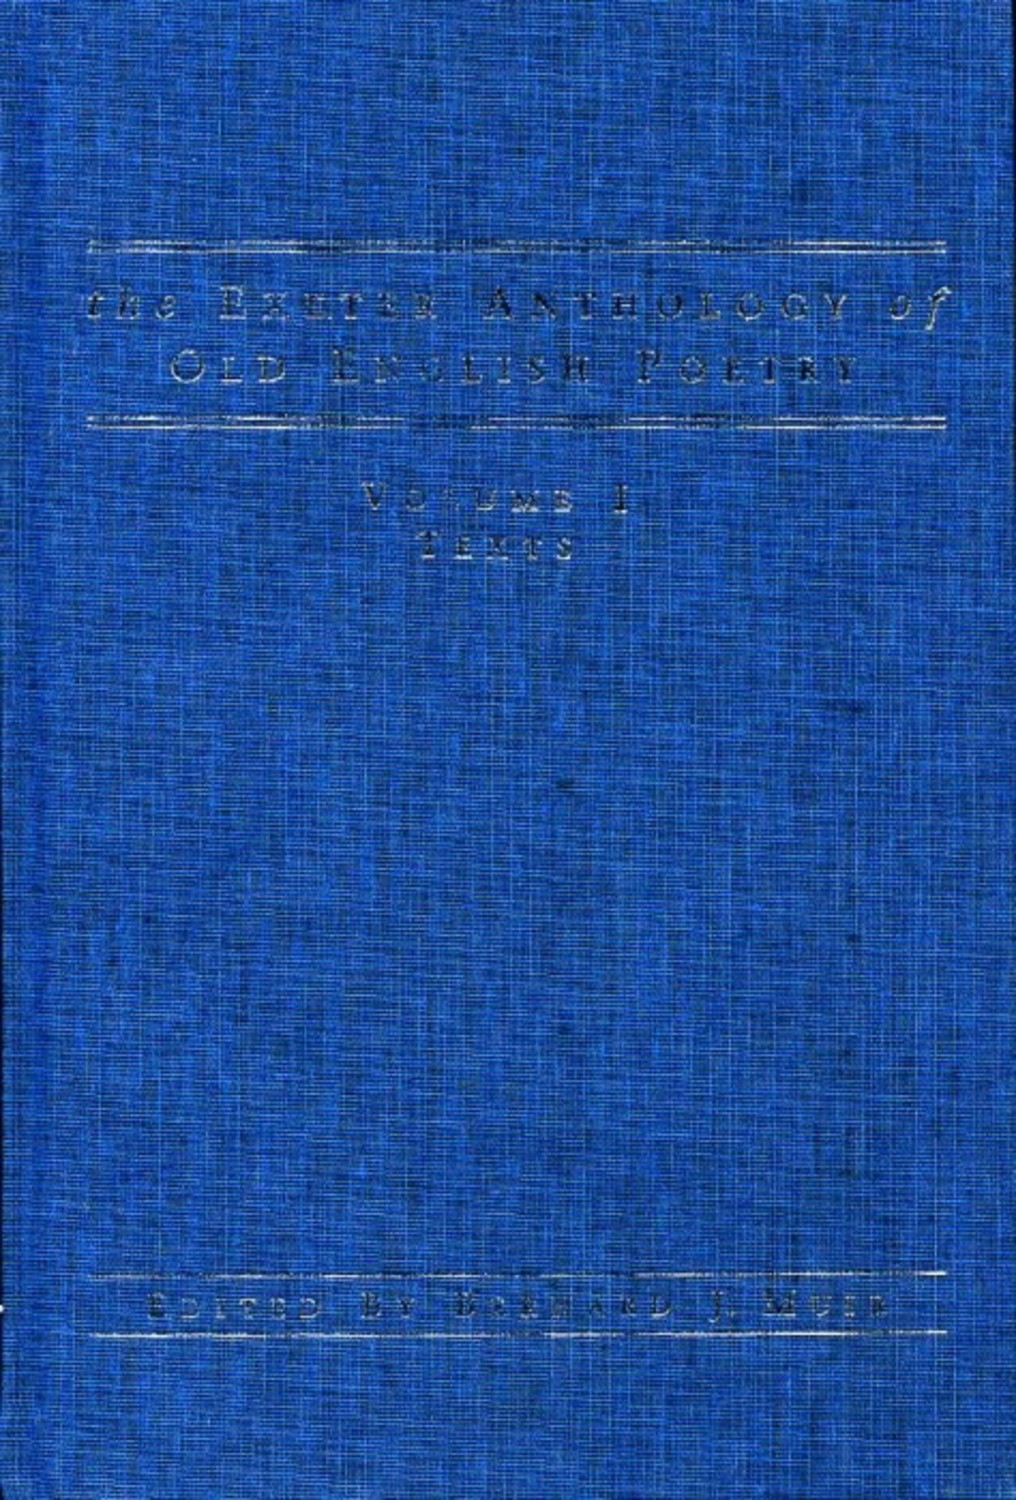 The Exeter Anthology of Old English Poetry